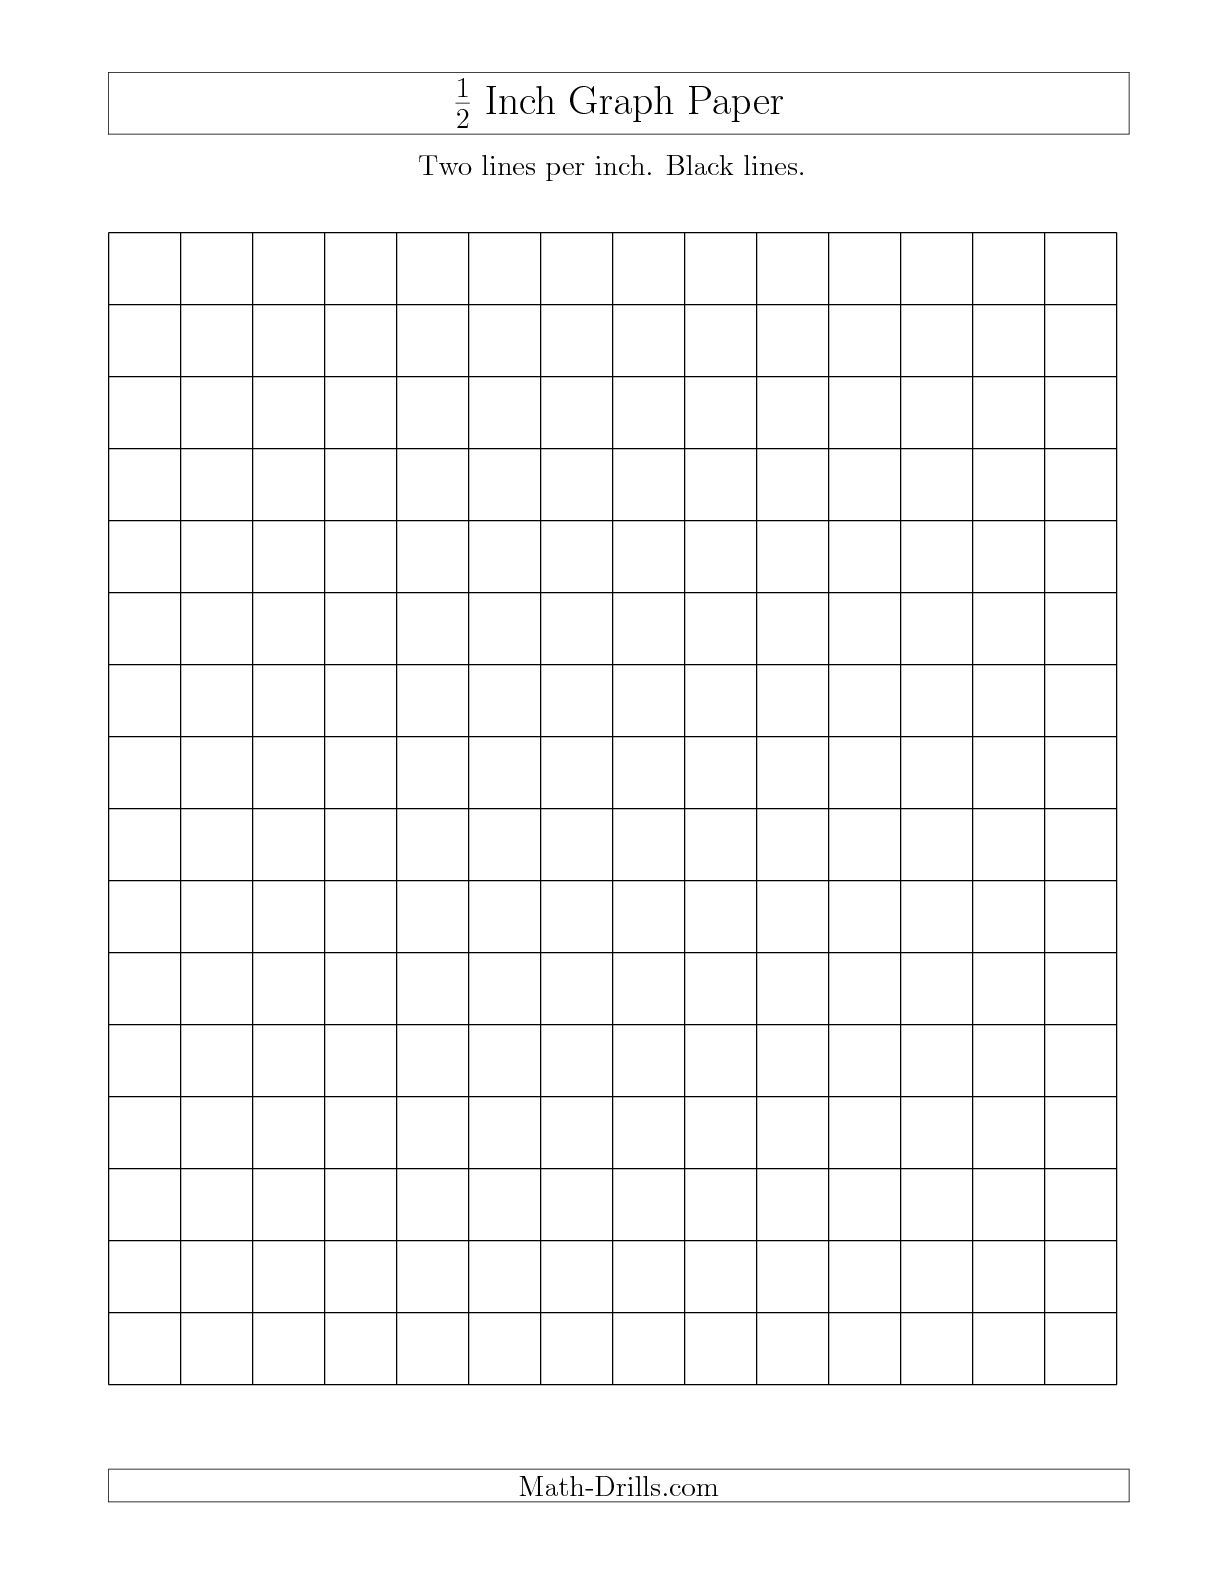 the 1 2 inch graph paper with black lines a math worksheet from the graph paper page at math. Black Bedroom Furniture Sets. Home Design Ideas